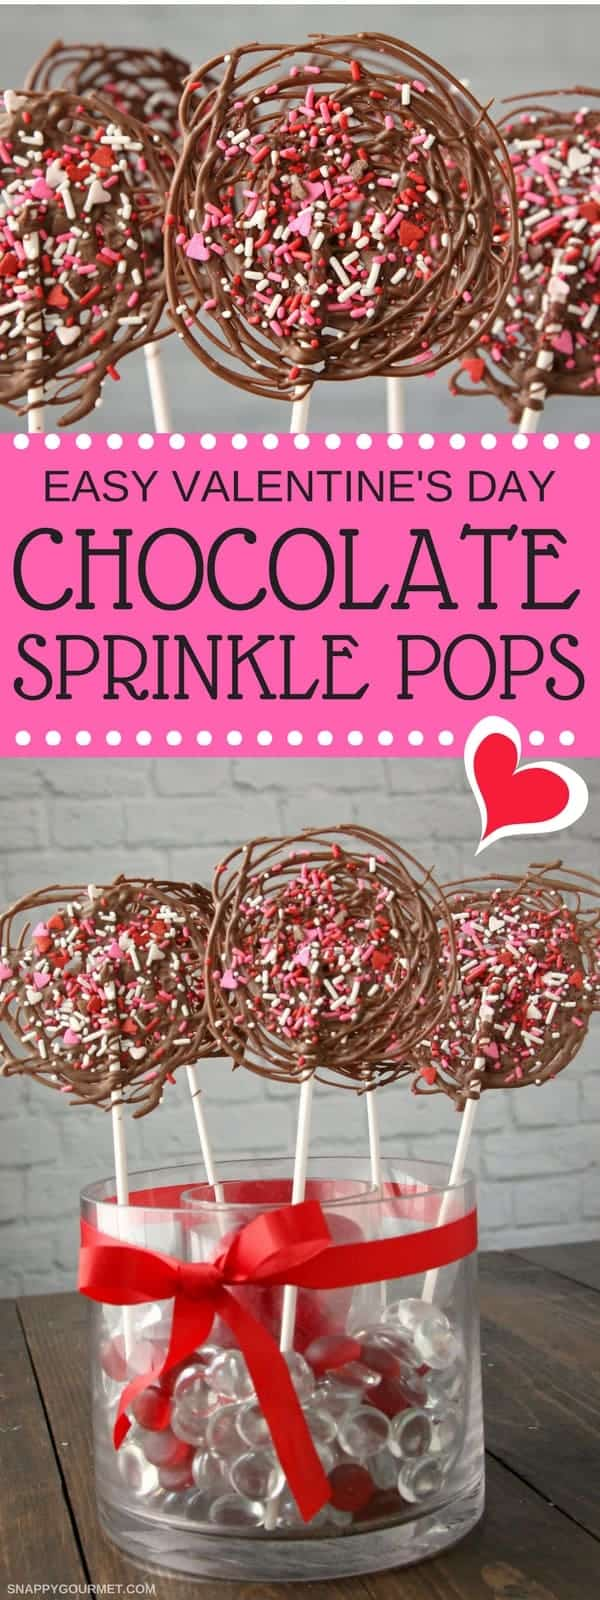 Easy Chocolate Pops - easy homemade chocolate lollipops recipe. SnappyGourmet.com